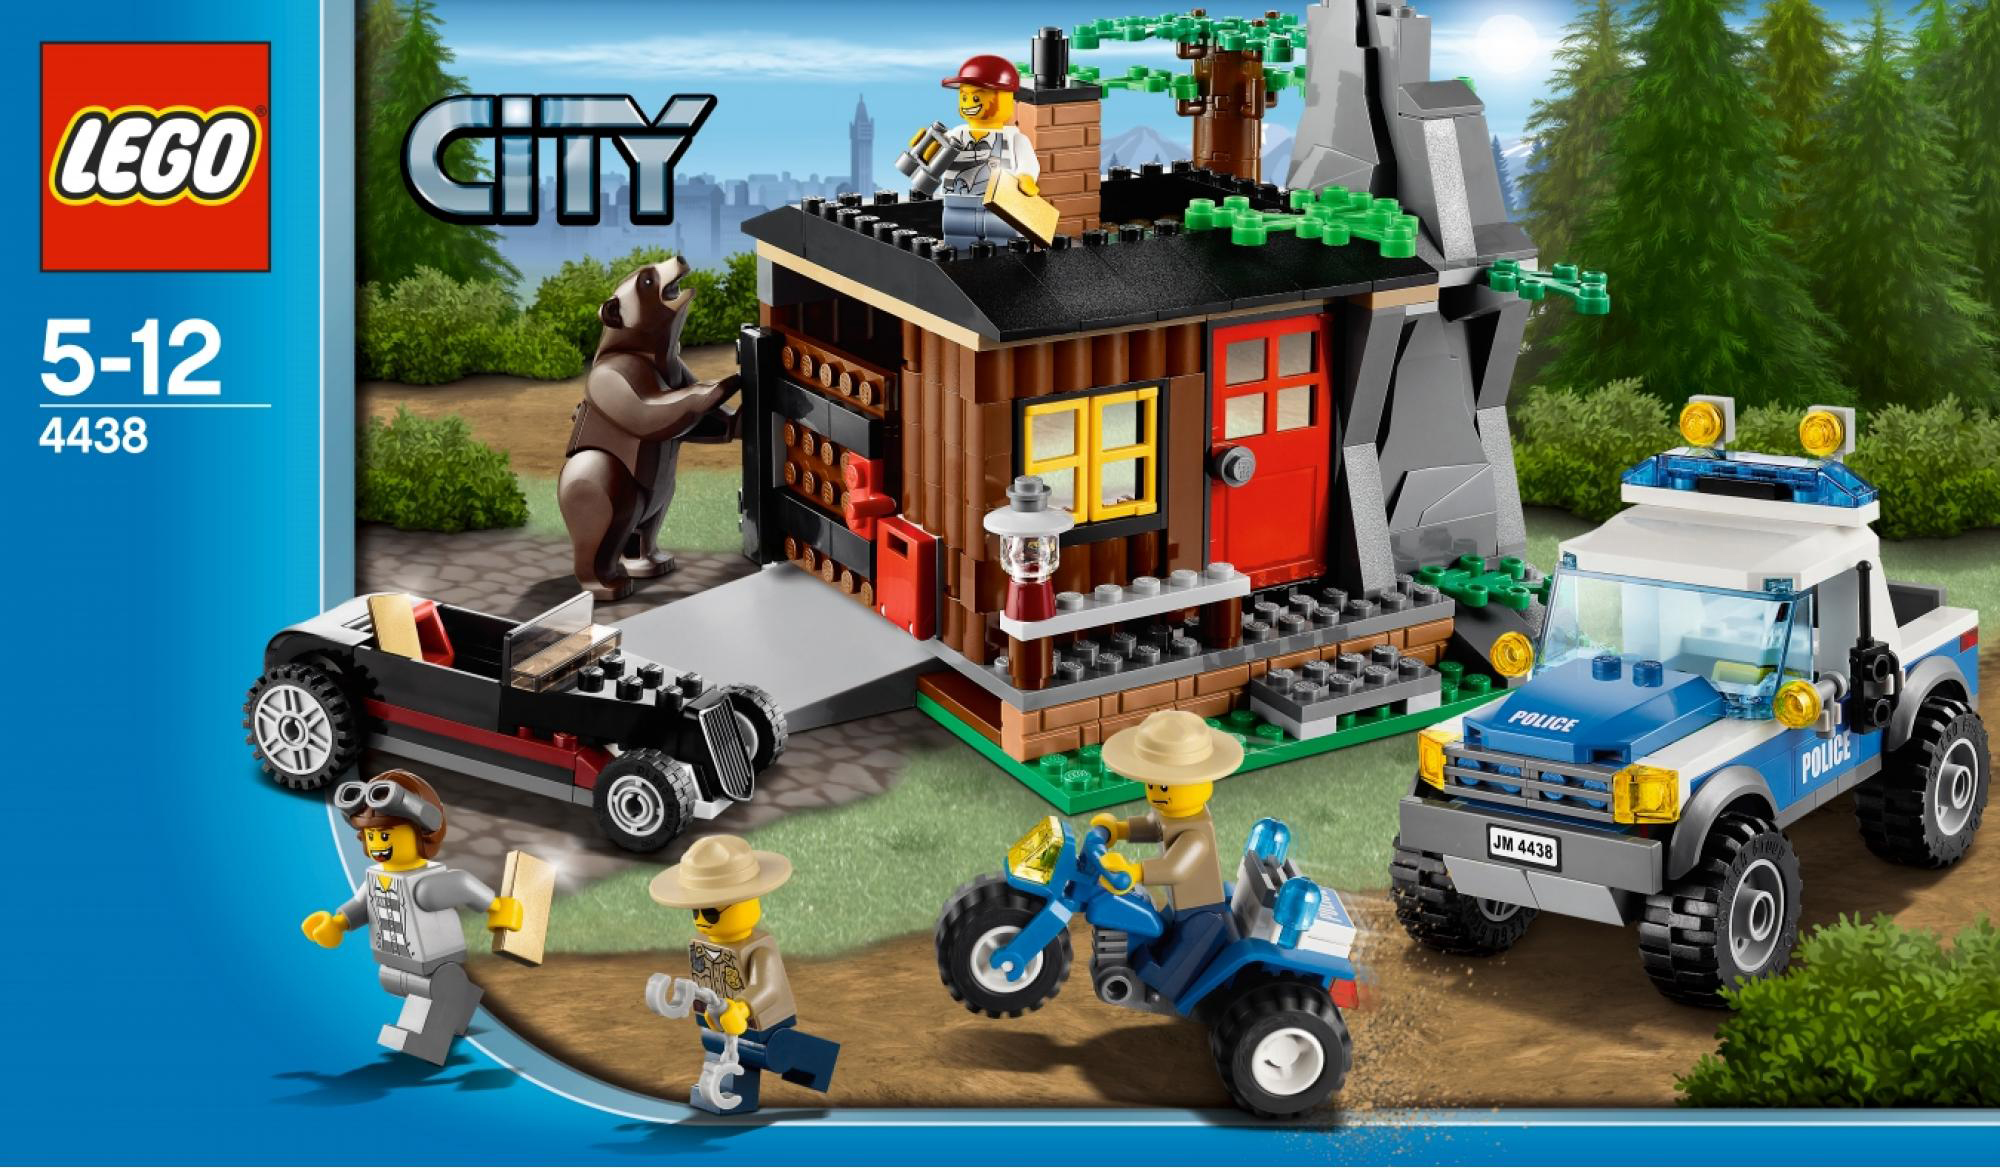 2012 lego city sets bring hillbillies bears forest fires park rangers news the brothers. Black Bedroom Furniture Sets. Home Design Ideas